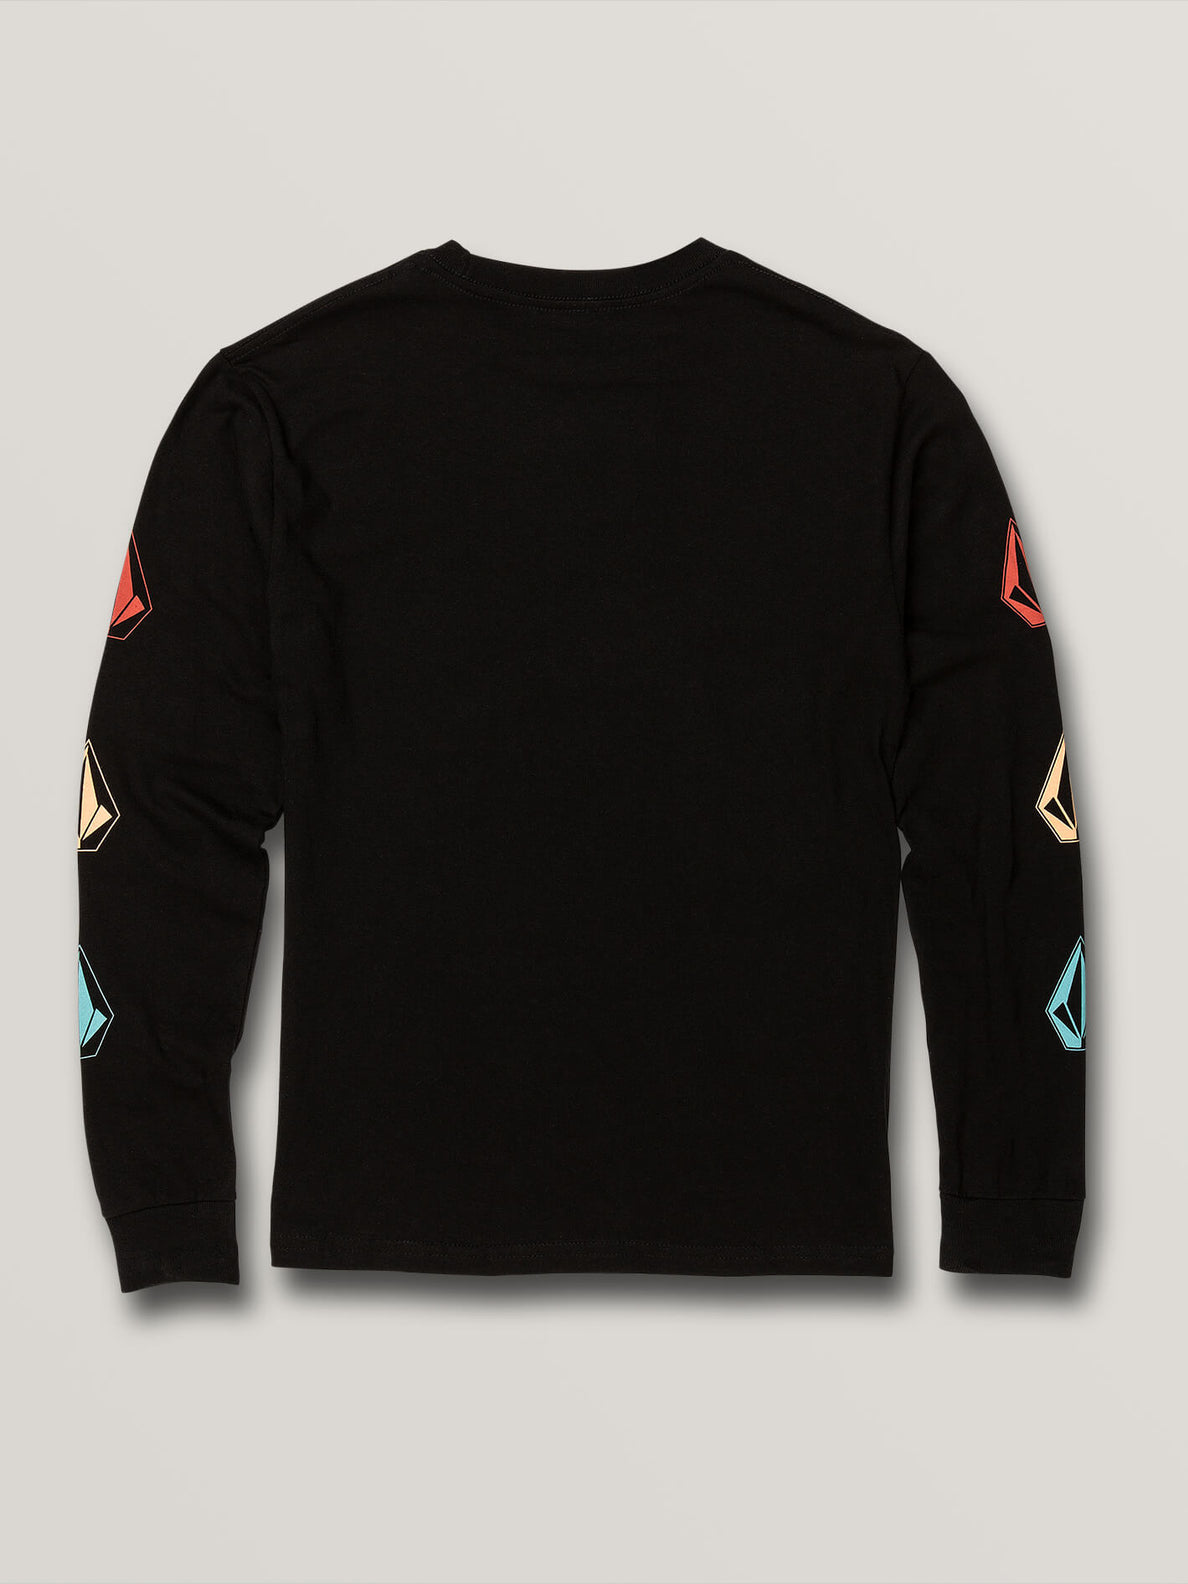 DEADLY STONES L/S TEE YOUTH (C3631702_BKB) [B]